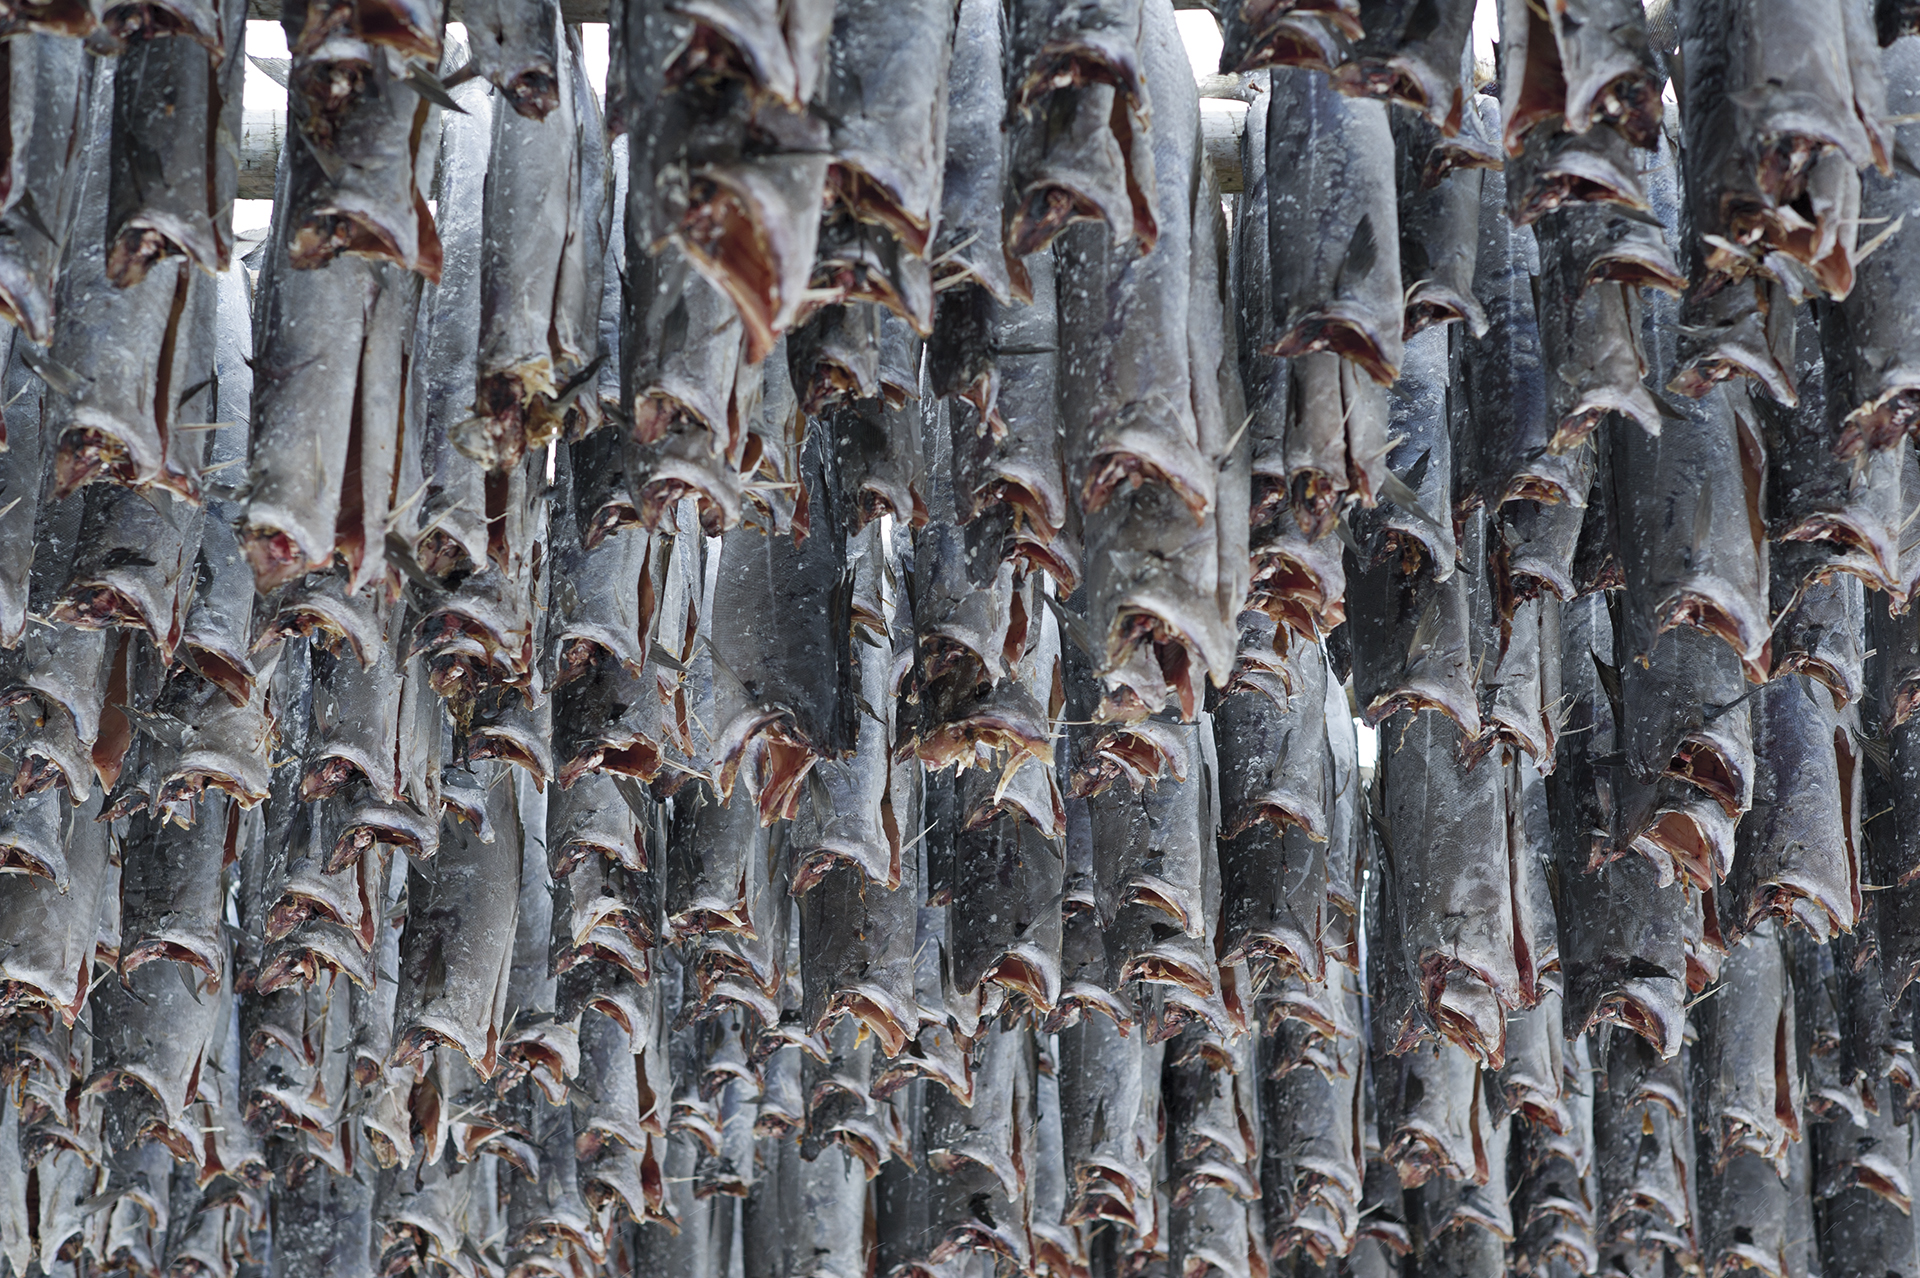 Stockfish. From the book The Lofoten Fishery.